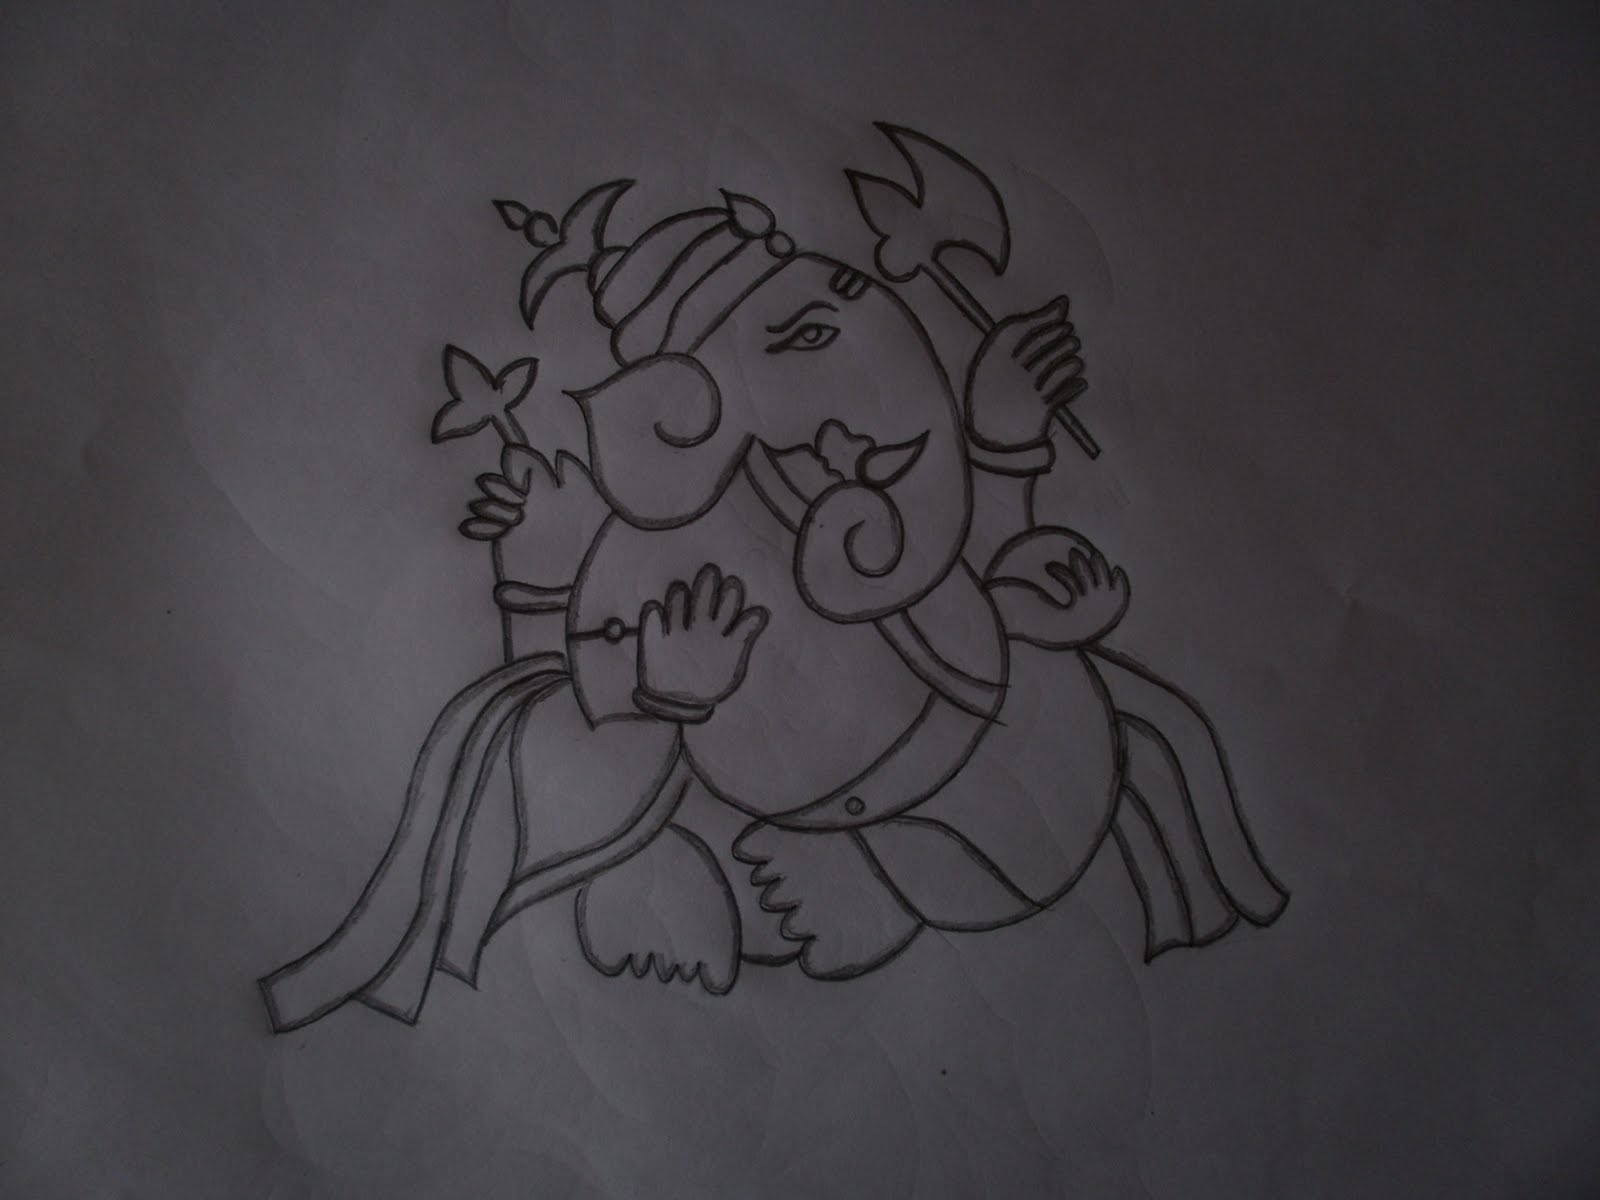 Vinayagar you might also like pencil drawings